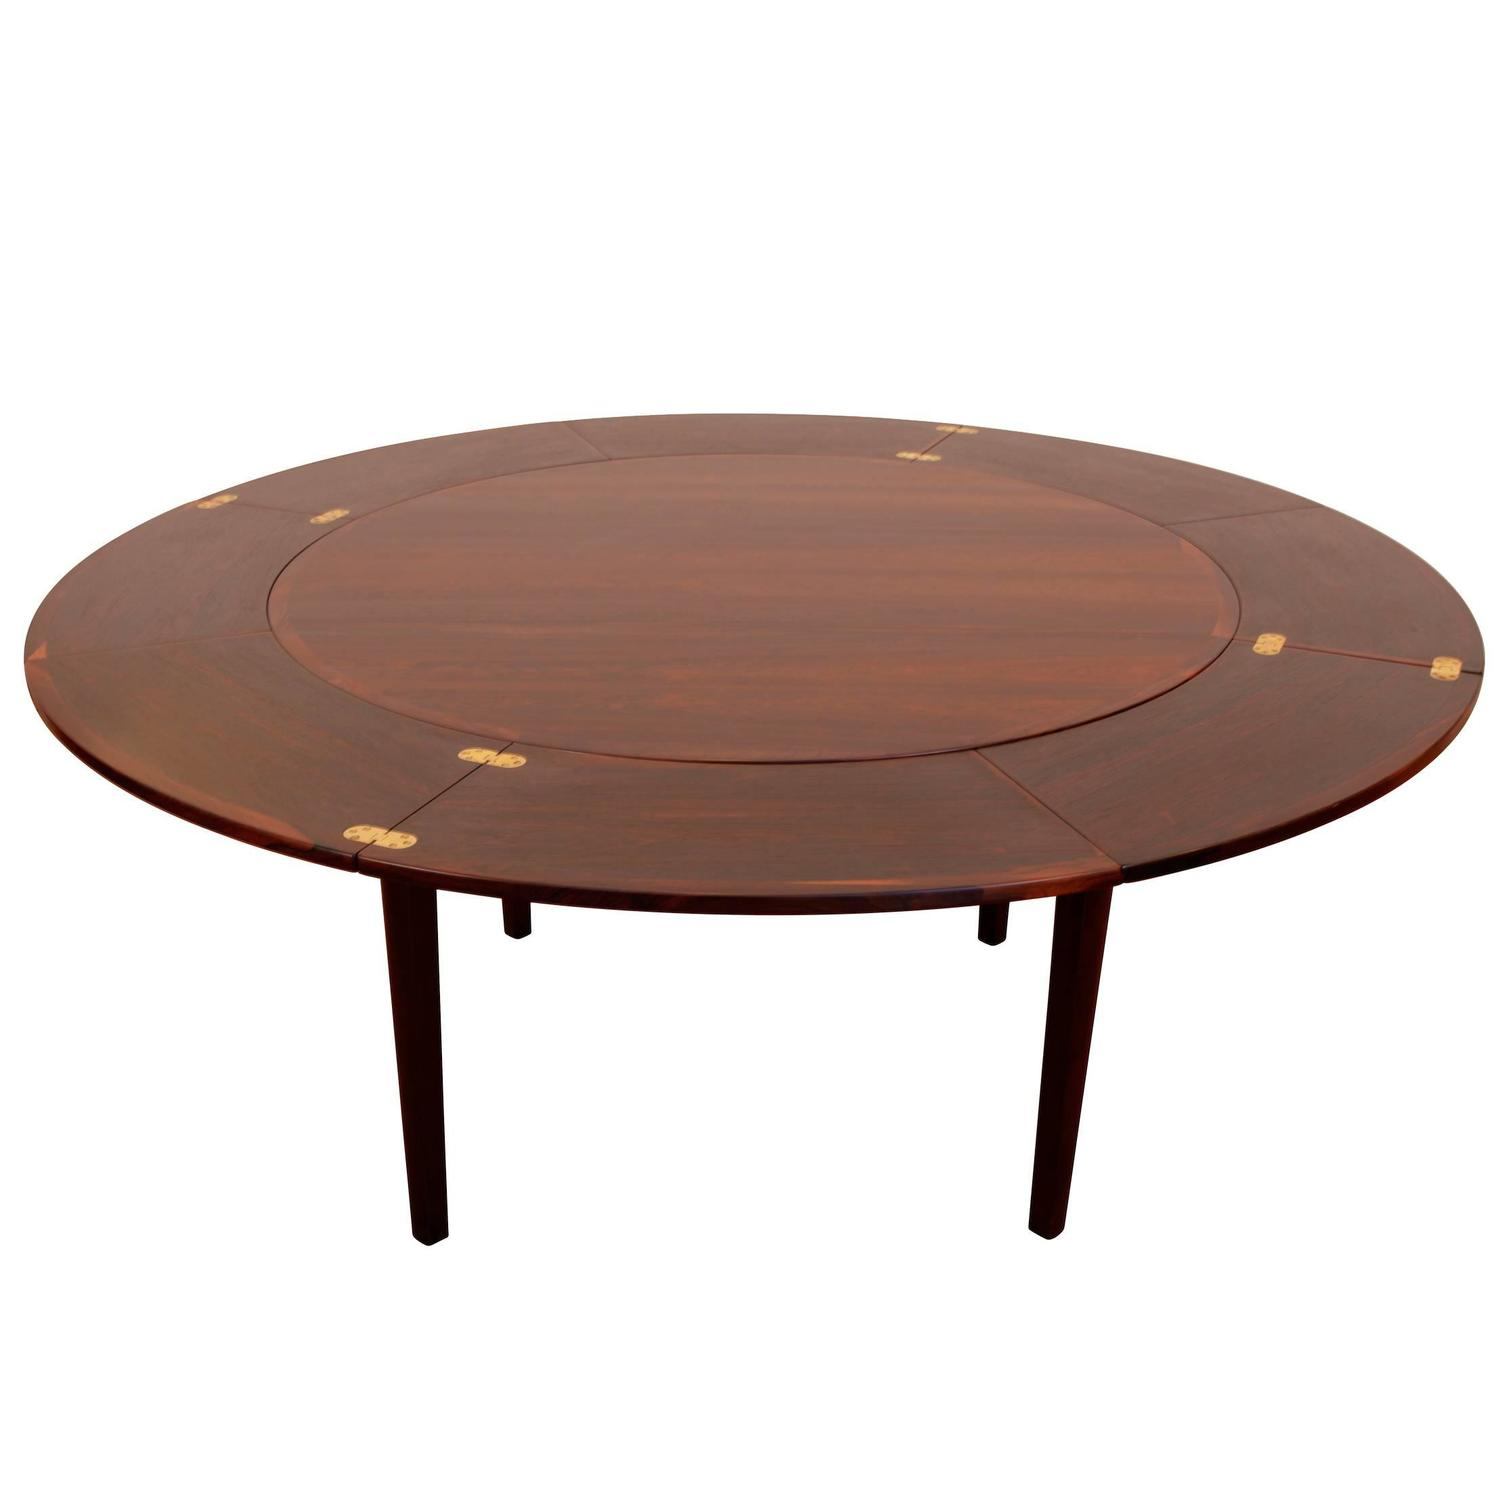 Dyrlund Dinning Table with Pull Out Leaves For Sale at 1stdibs